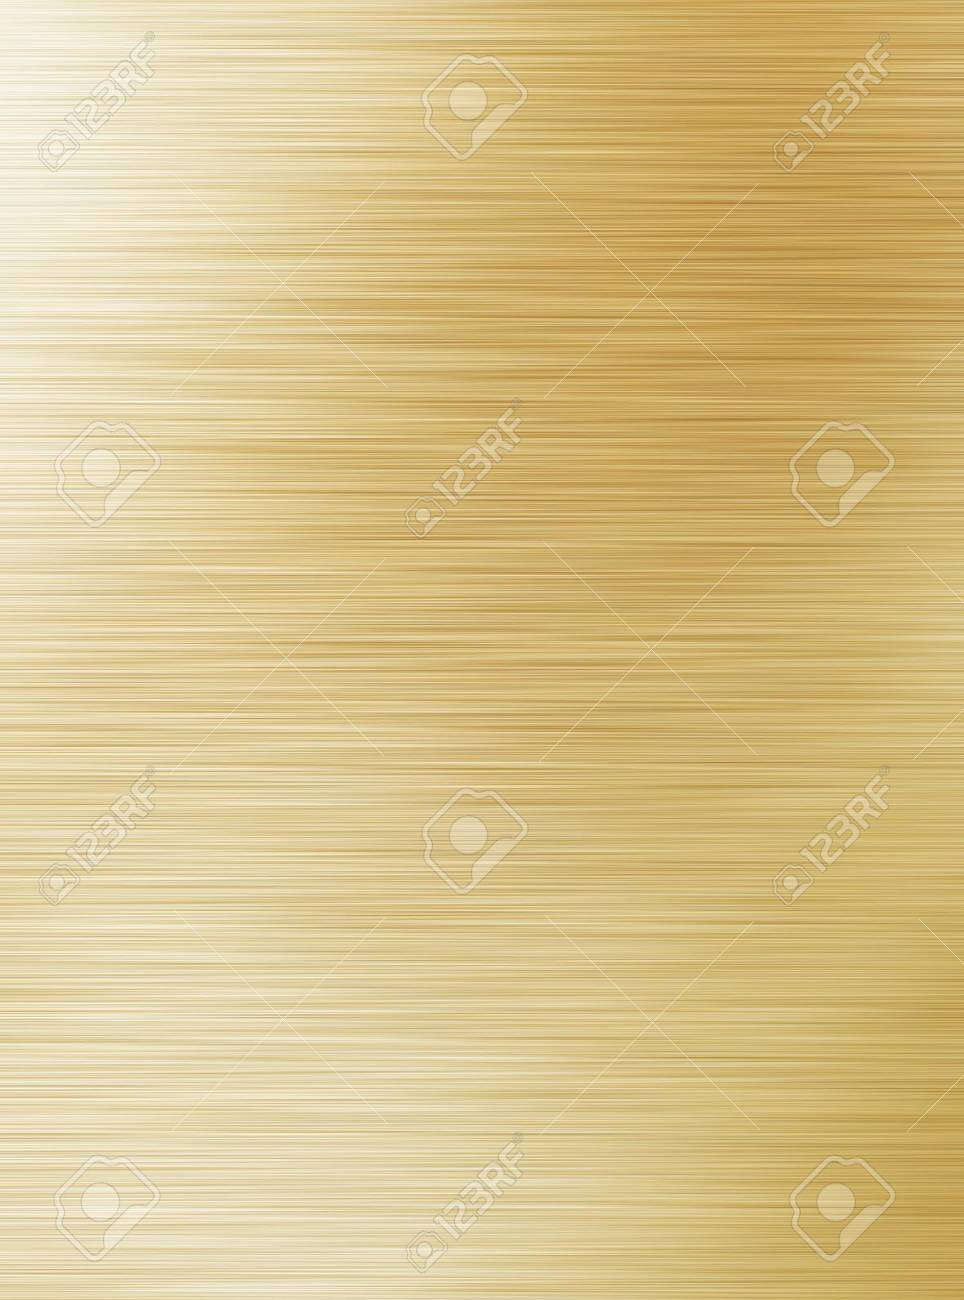 metal background Stock Photo - 14668371